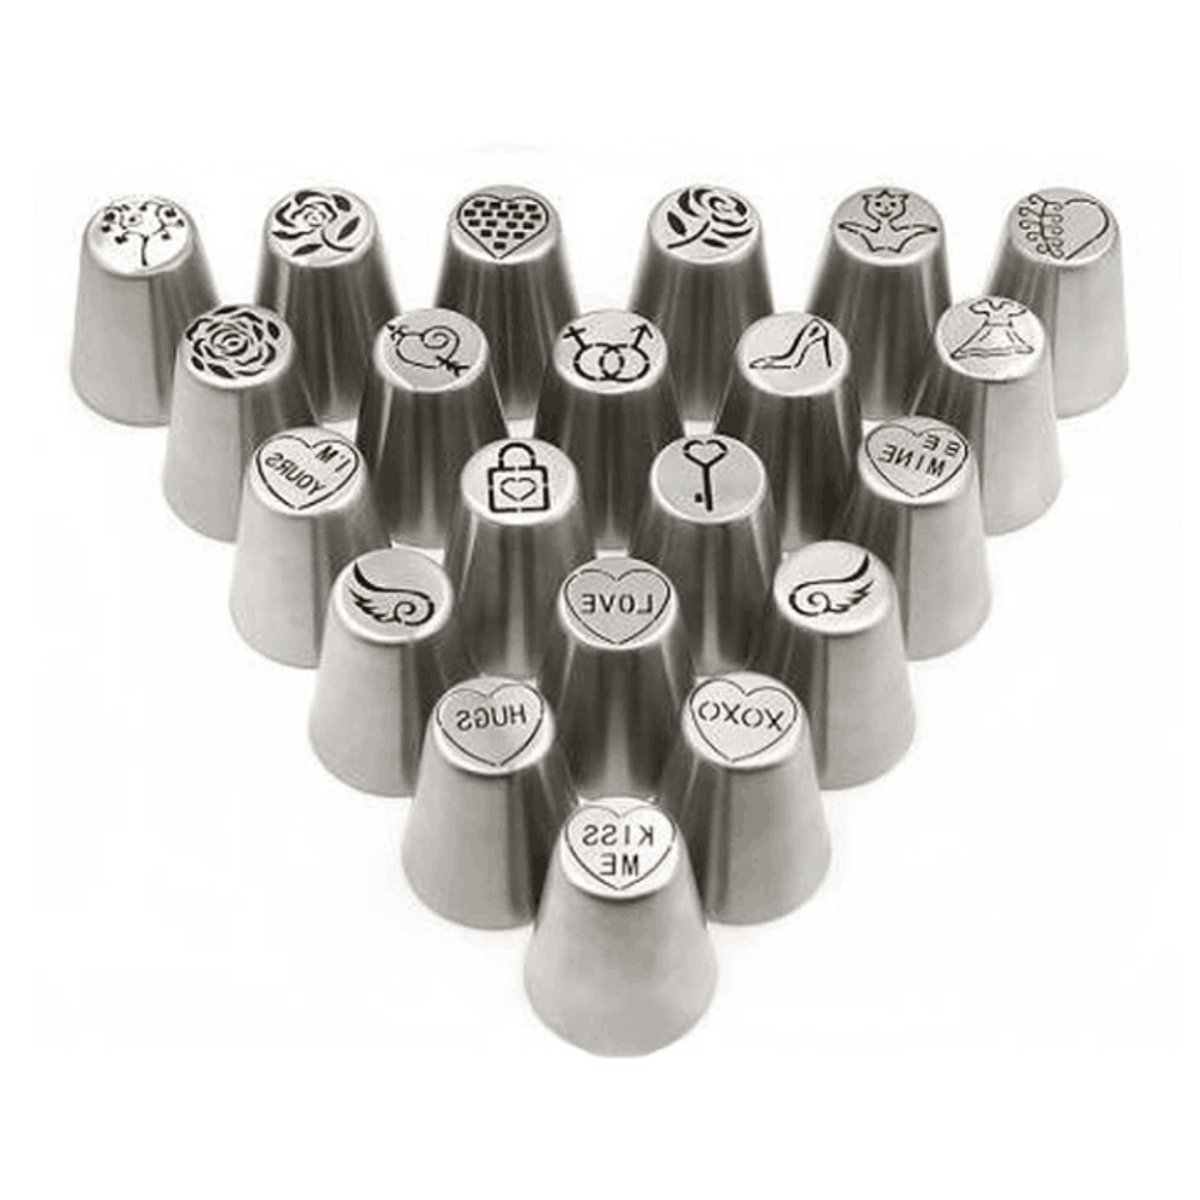 21 Pcs Set Valentine's Day Icing Piping Nozzles Tips Cake Decorating Icing Piping Nozzle